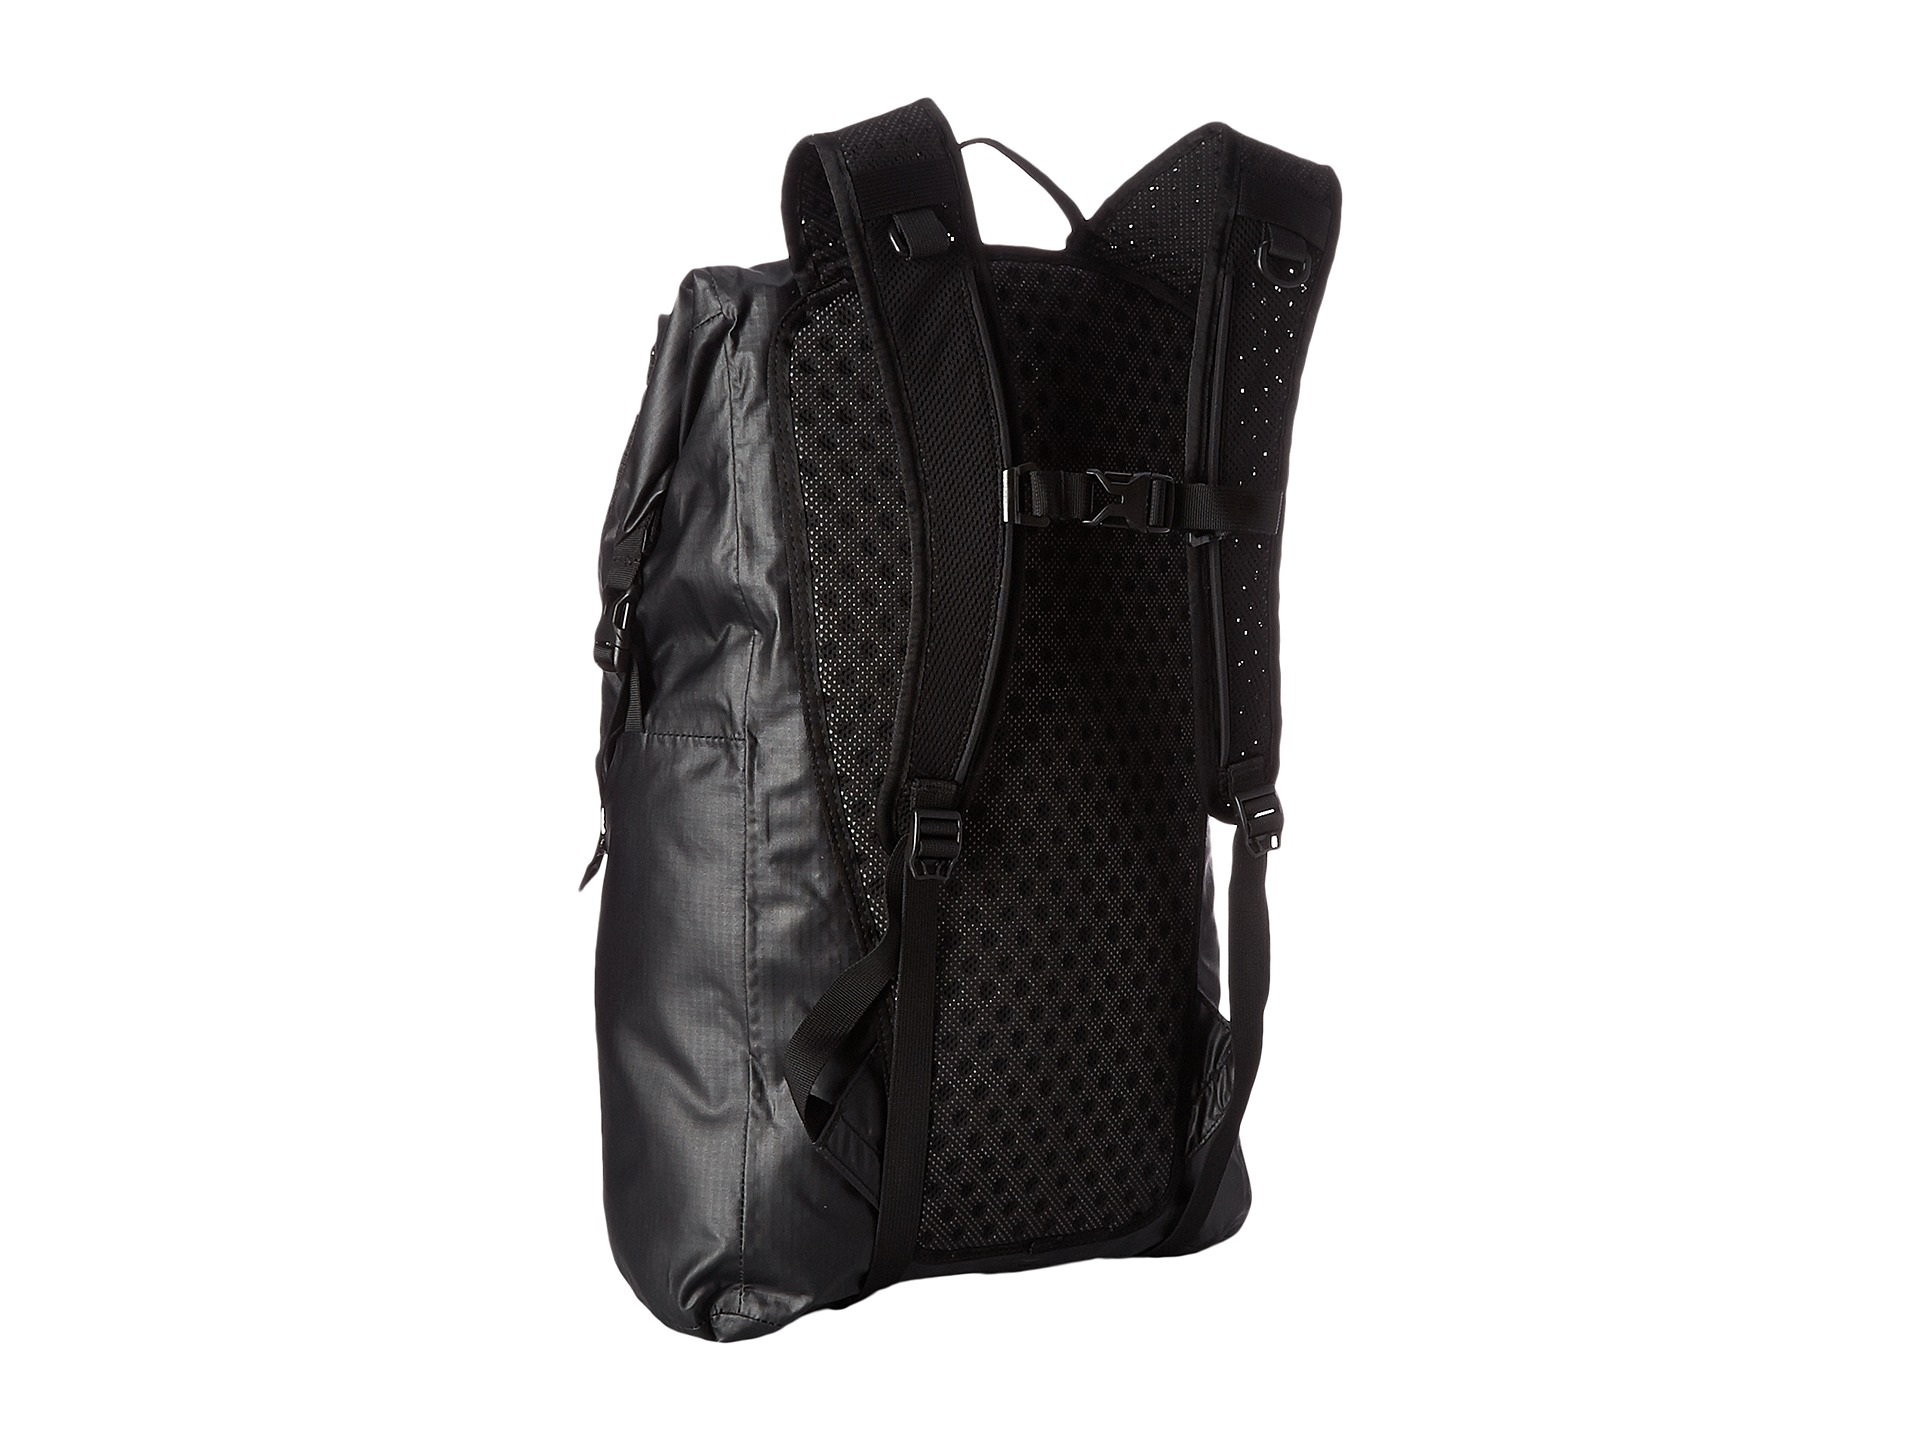 Waterproof Backpack North Face - CEAGESP 2ea47bb37f60